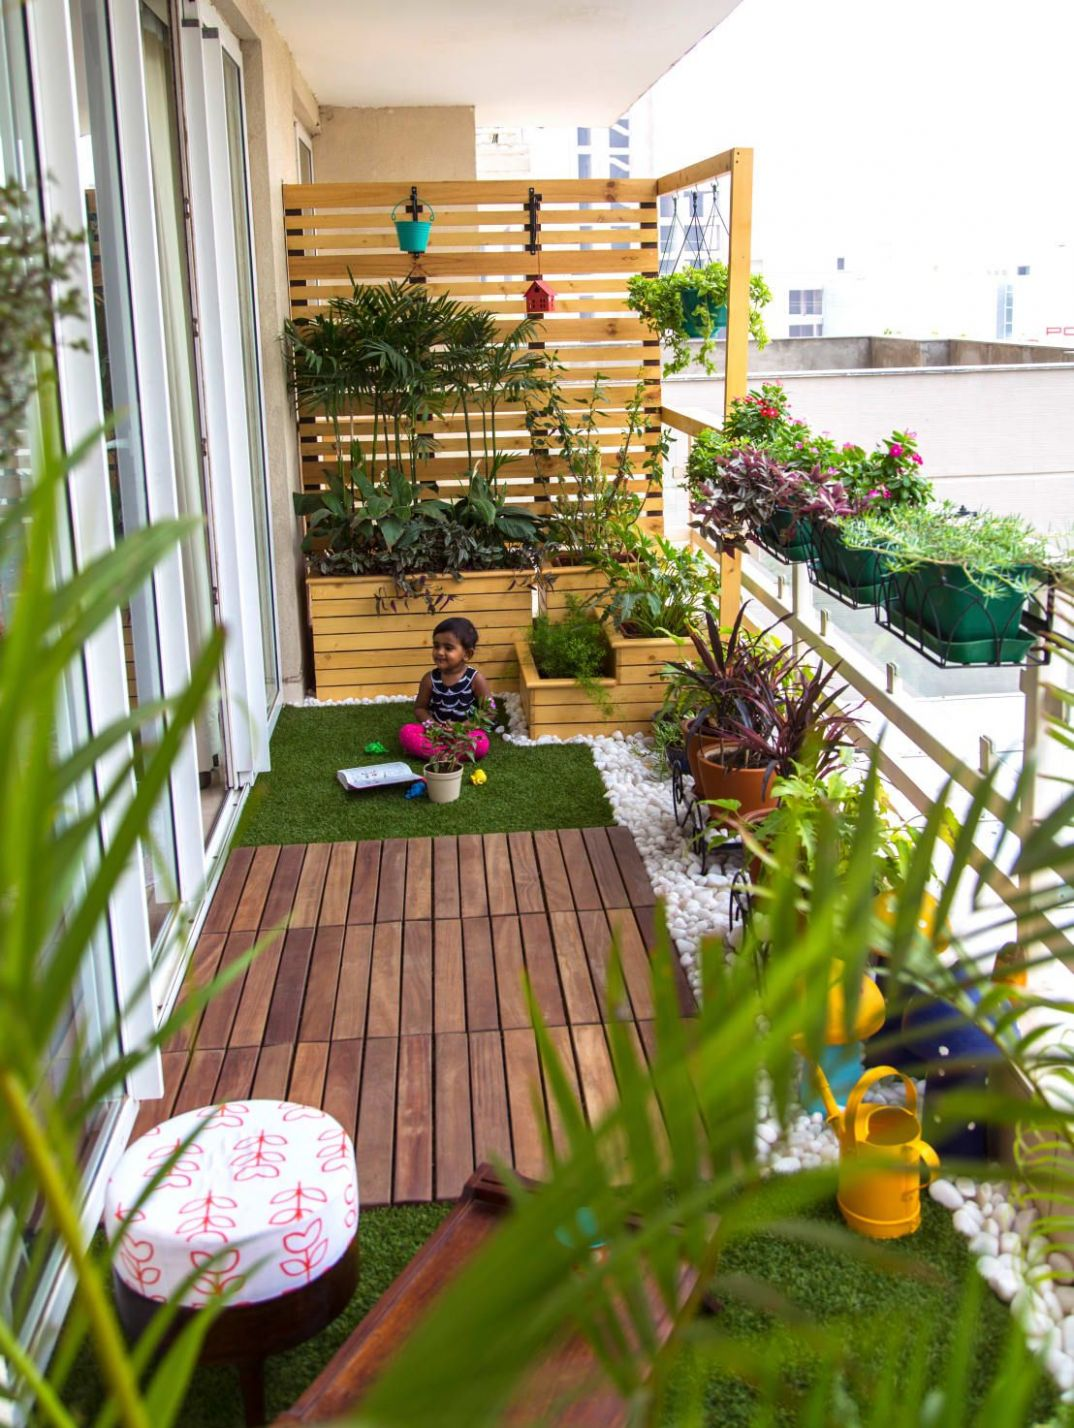 10 Smart Balcony Garden Ideas That are Awesome | Small balcony ..